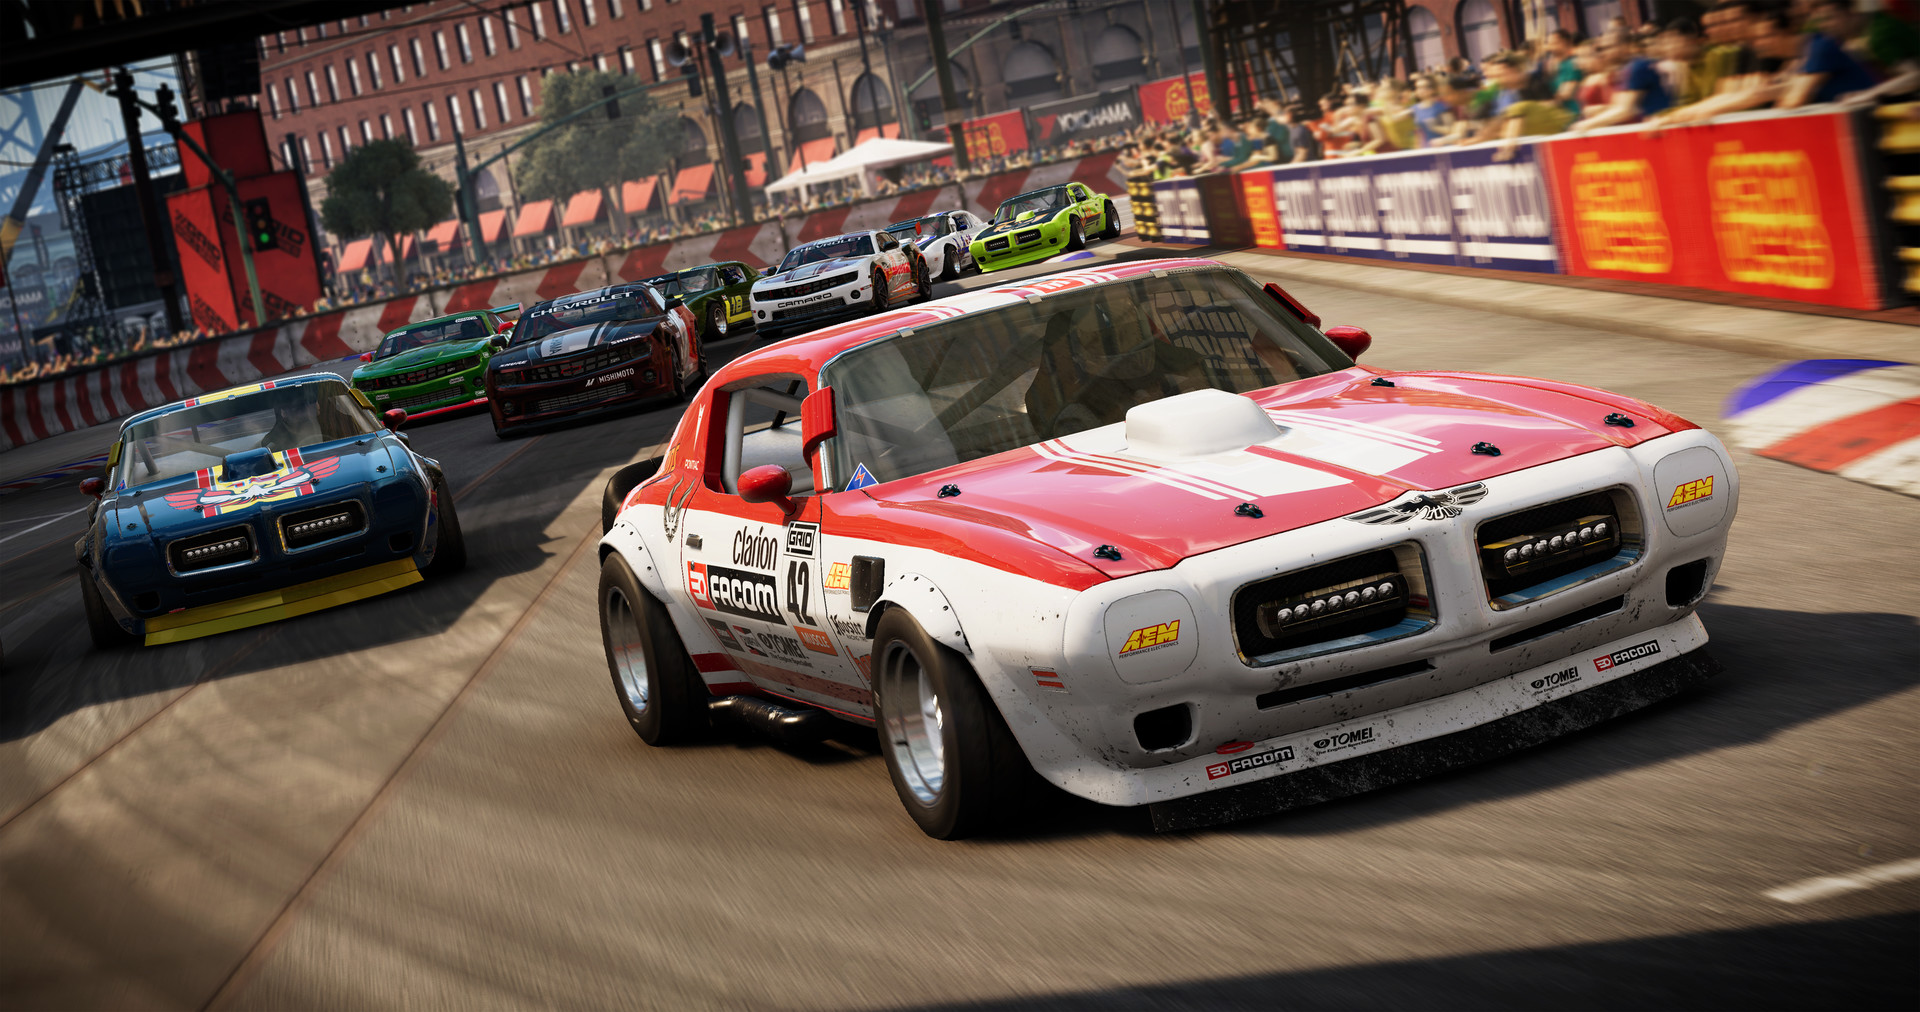 GRID 2019 (STEAM KEY/RUSSIA AND CIS)